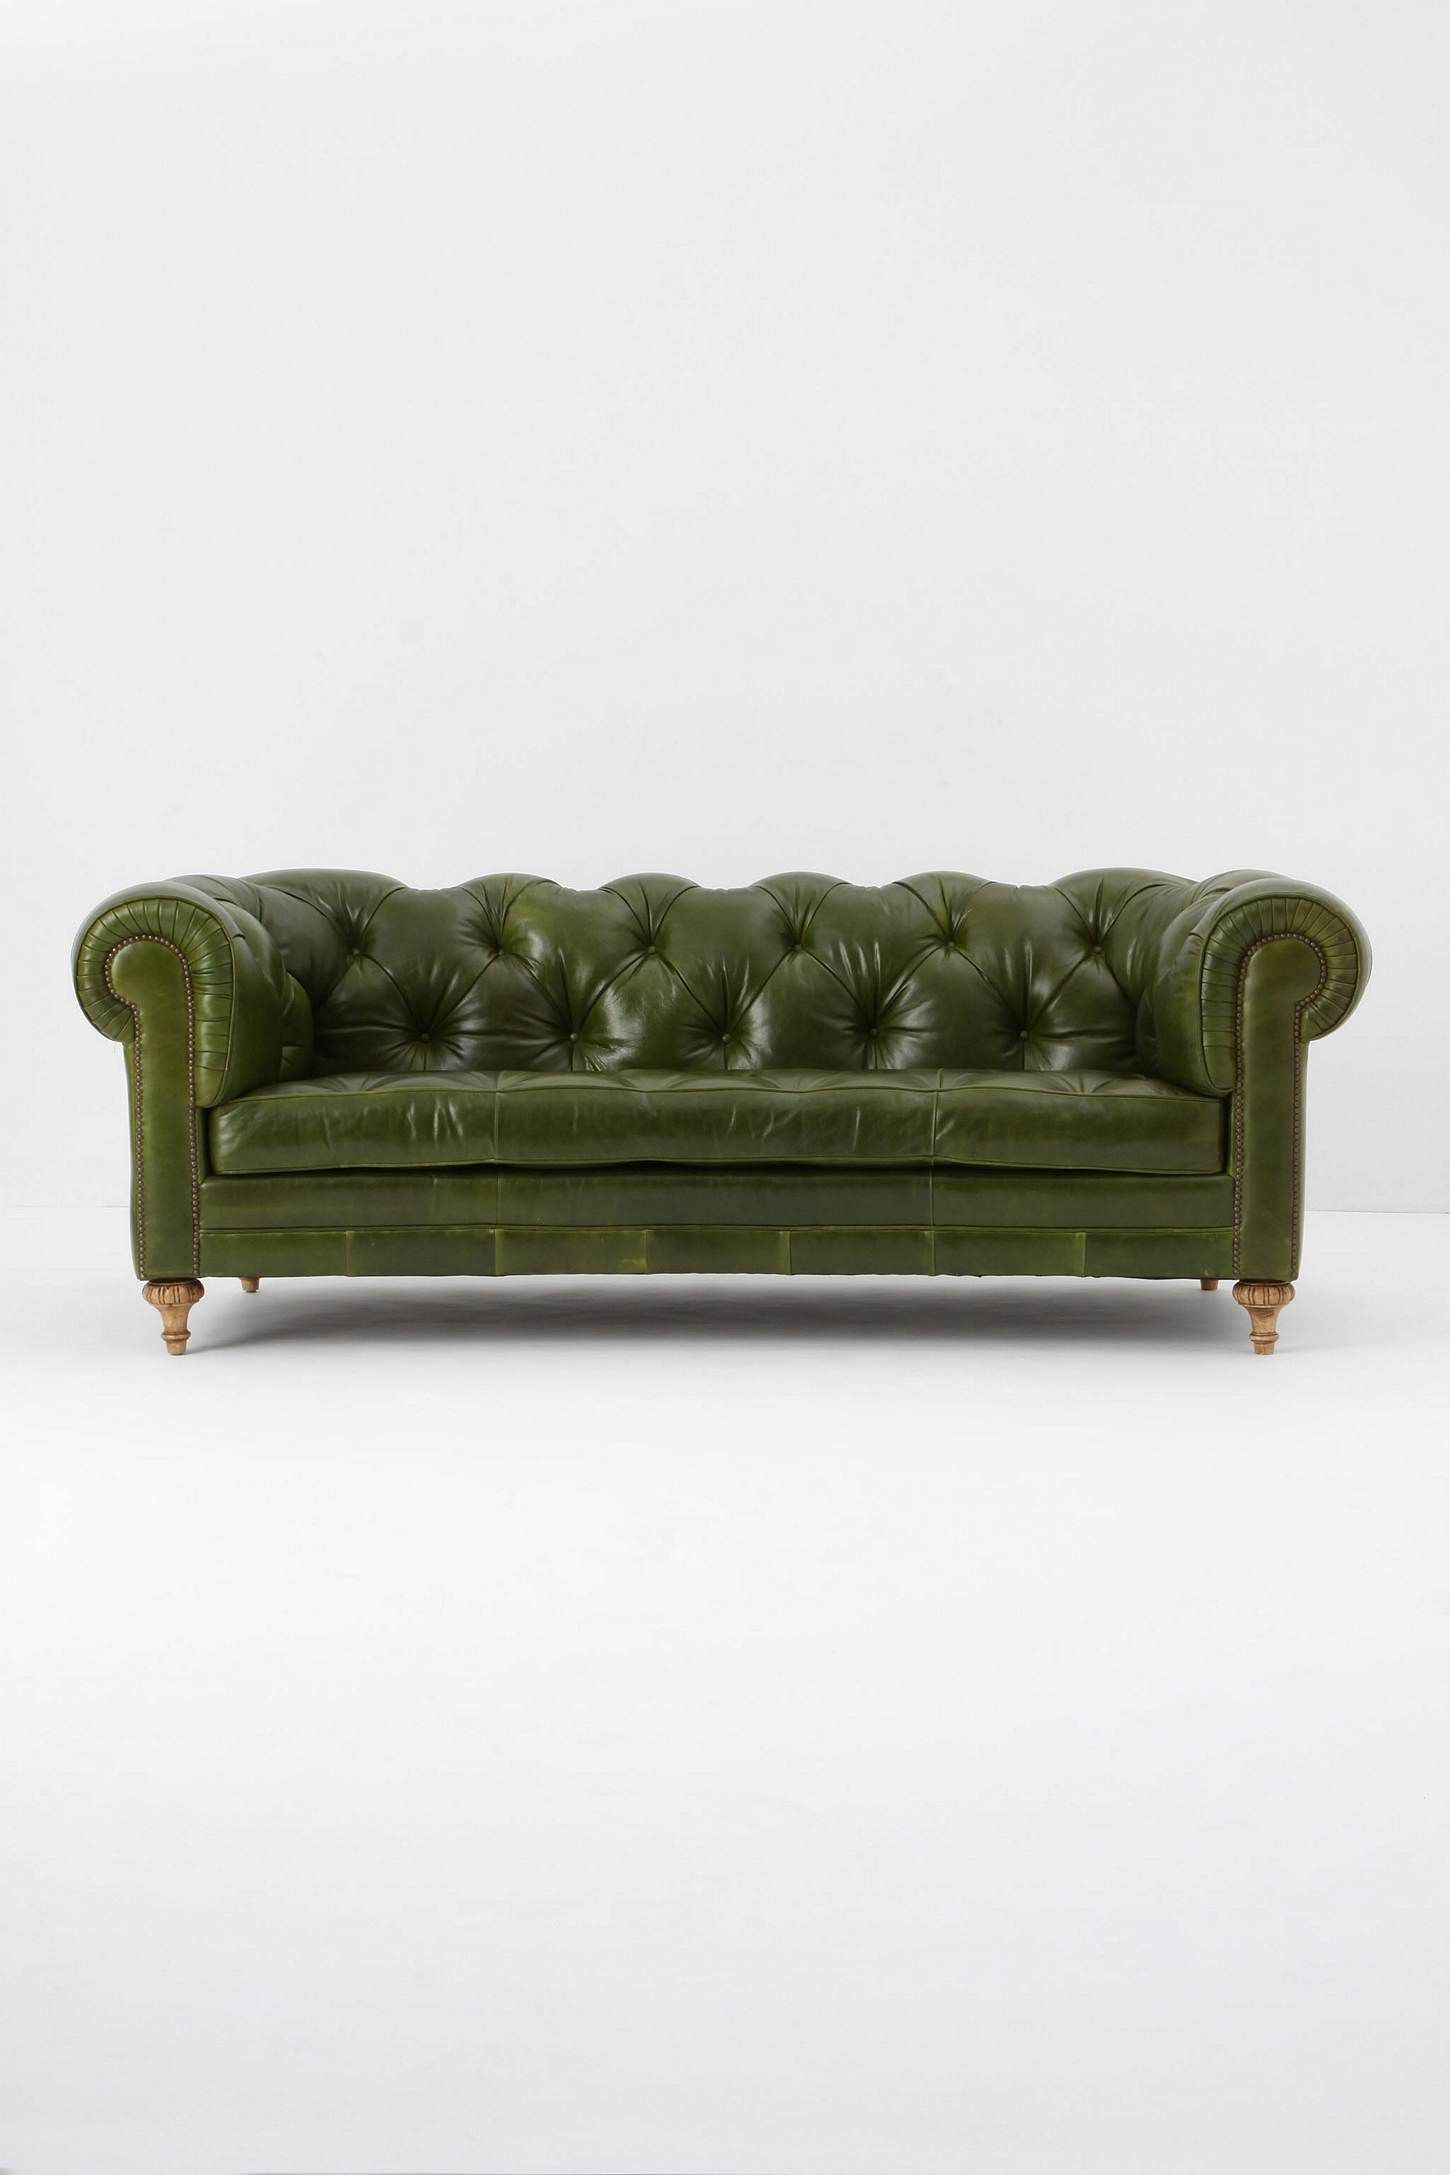 Atelier Chesterfield Bottle Green Green Leather Sofa Leather Sofa Green Sofa